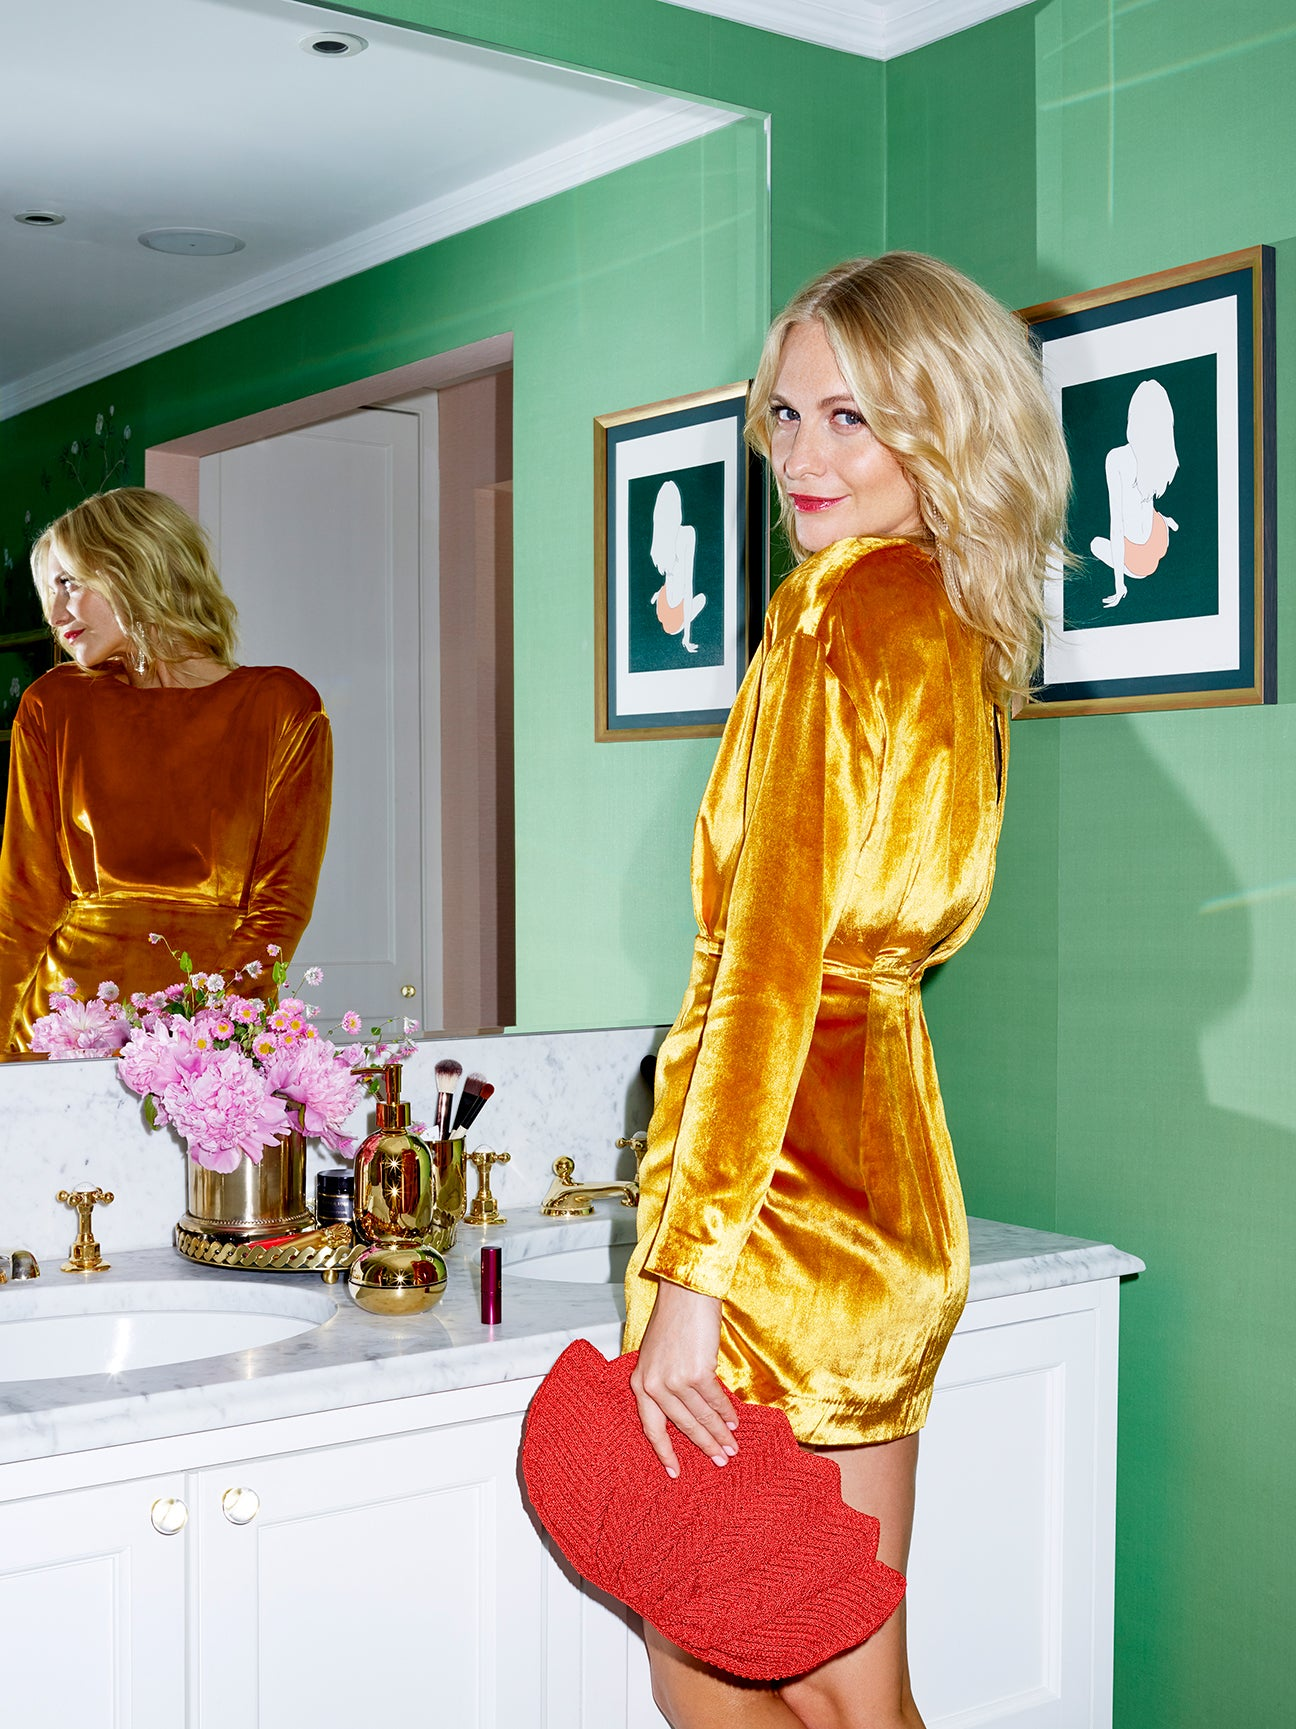 00-FEATURE-Poppy-Delevingne-Home-Tour-H_M-Domino